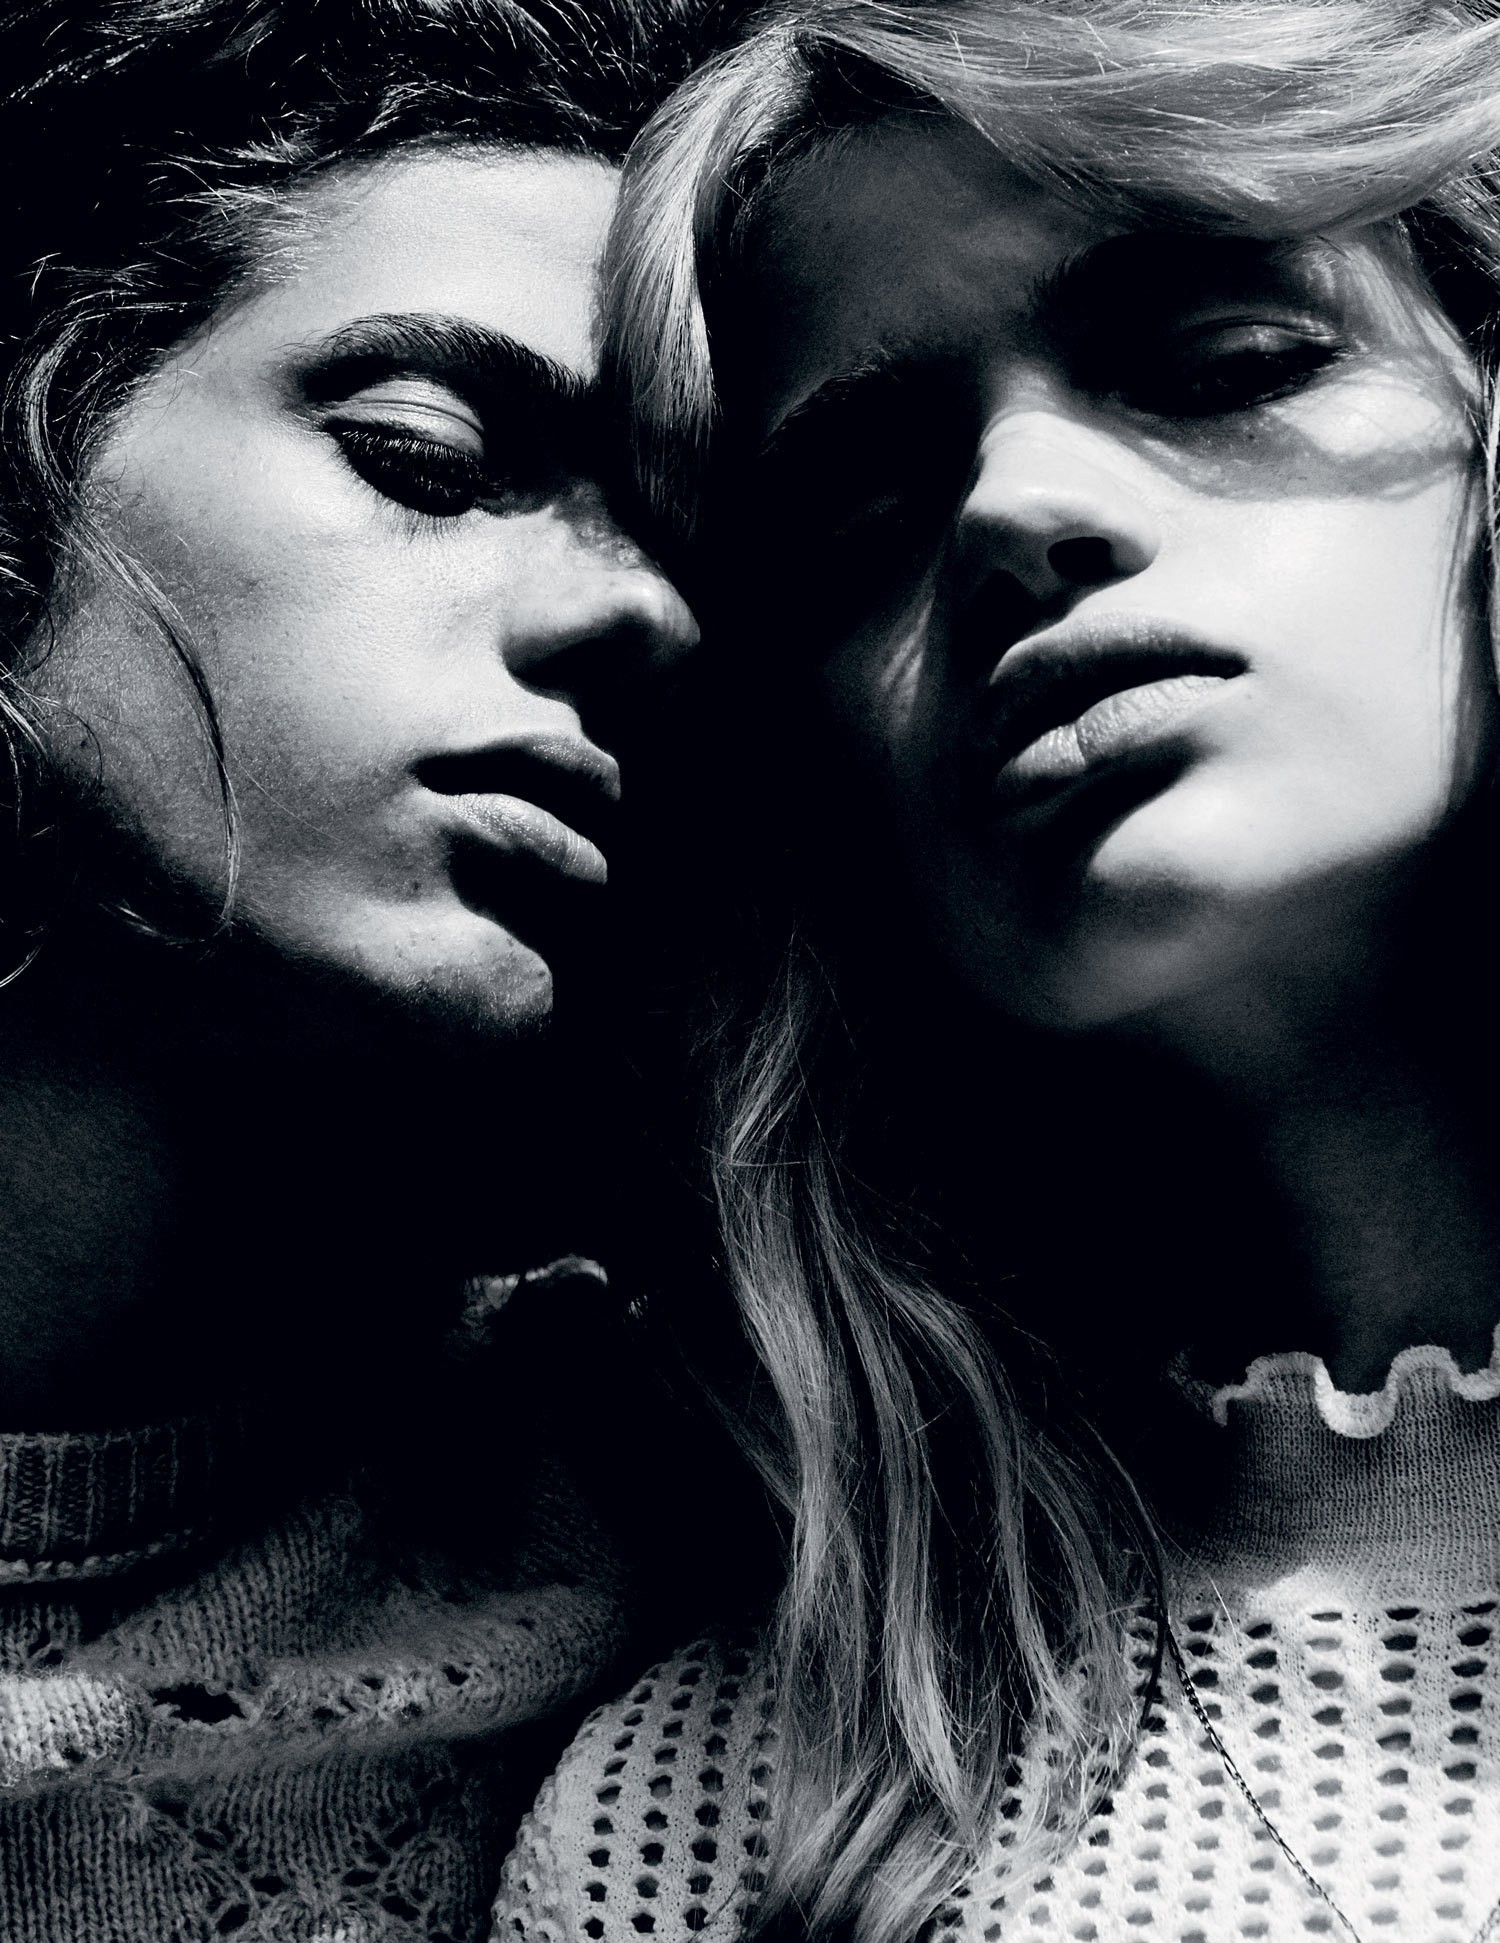 lexi-boling-cayley-king-stella-lucia-erin-mommsen-by-daniel-jackson-for-i-d-magazine-winter-2015